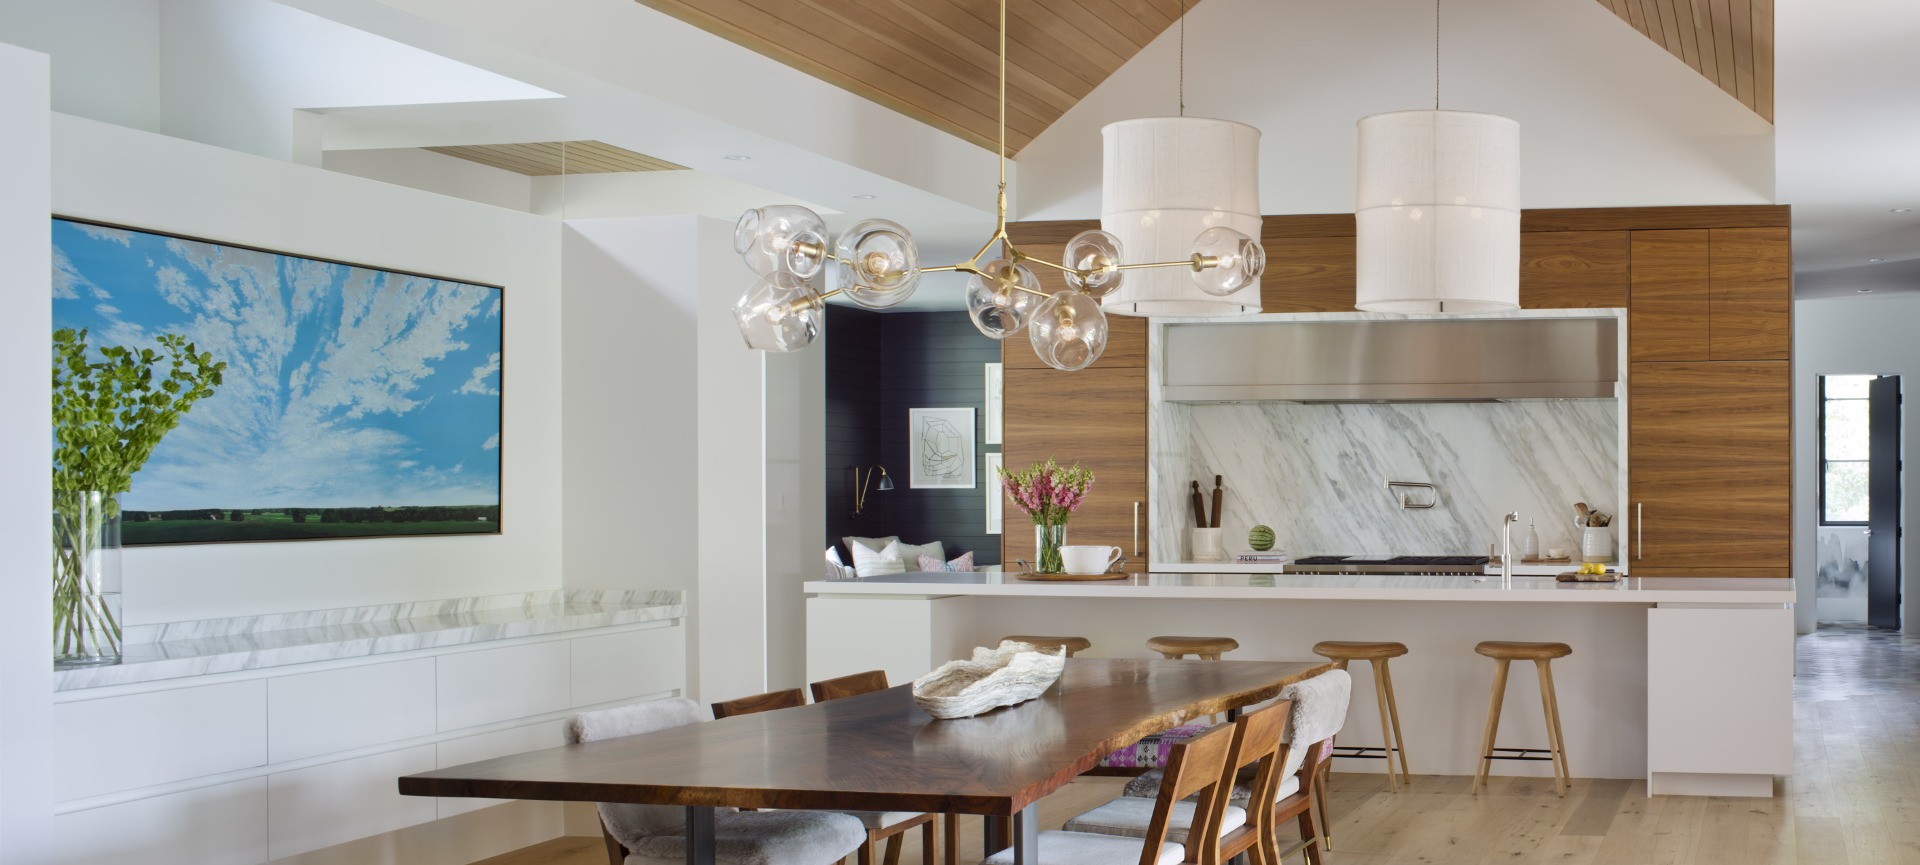 Featured Home Kitchen Denver